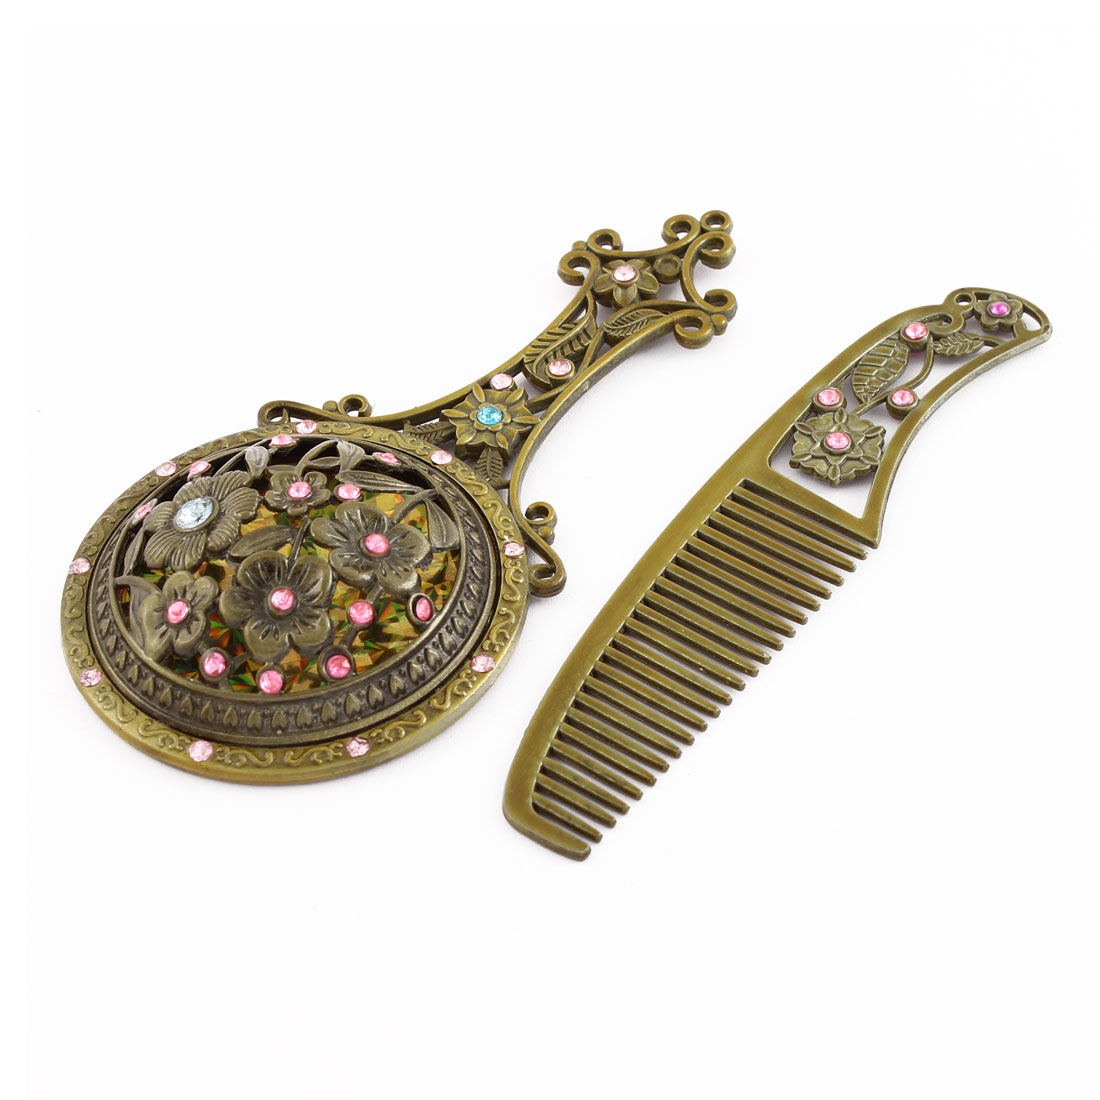 Lady Retro Style Flower Shaped Rhinestone Inlaid Makeup Mirror Comb Bronze Tone